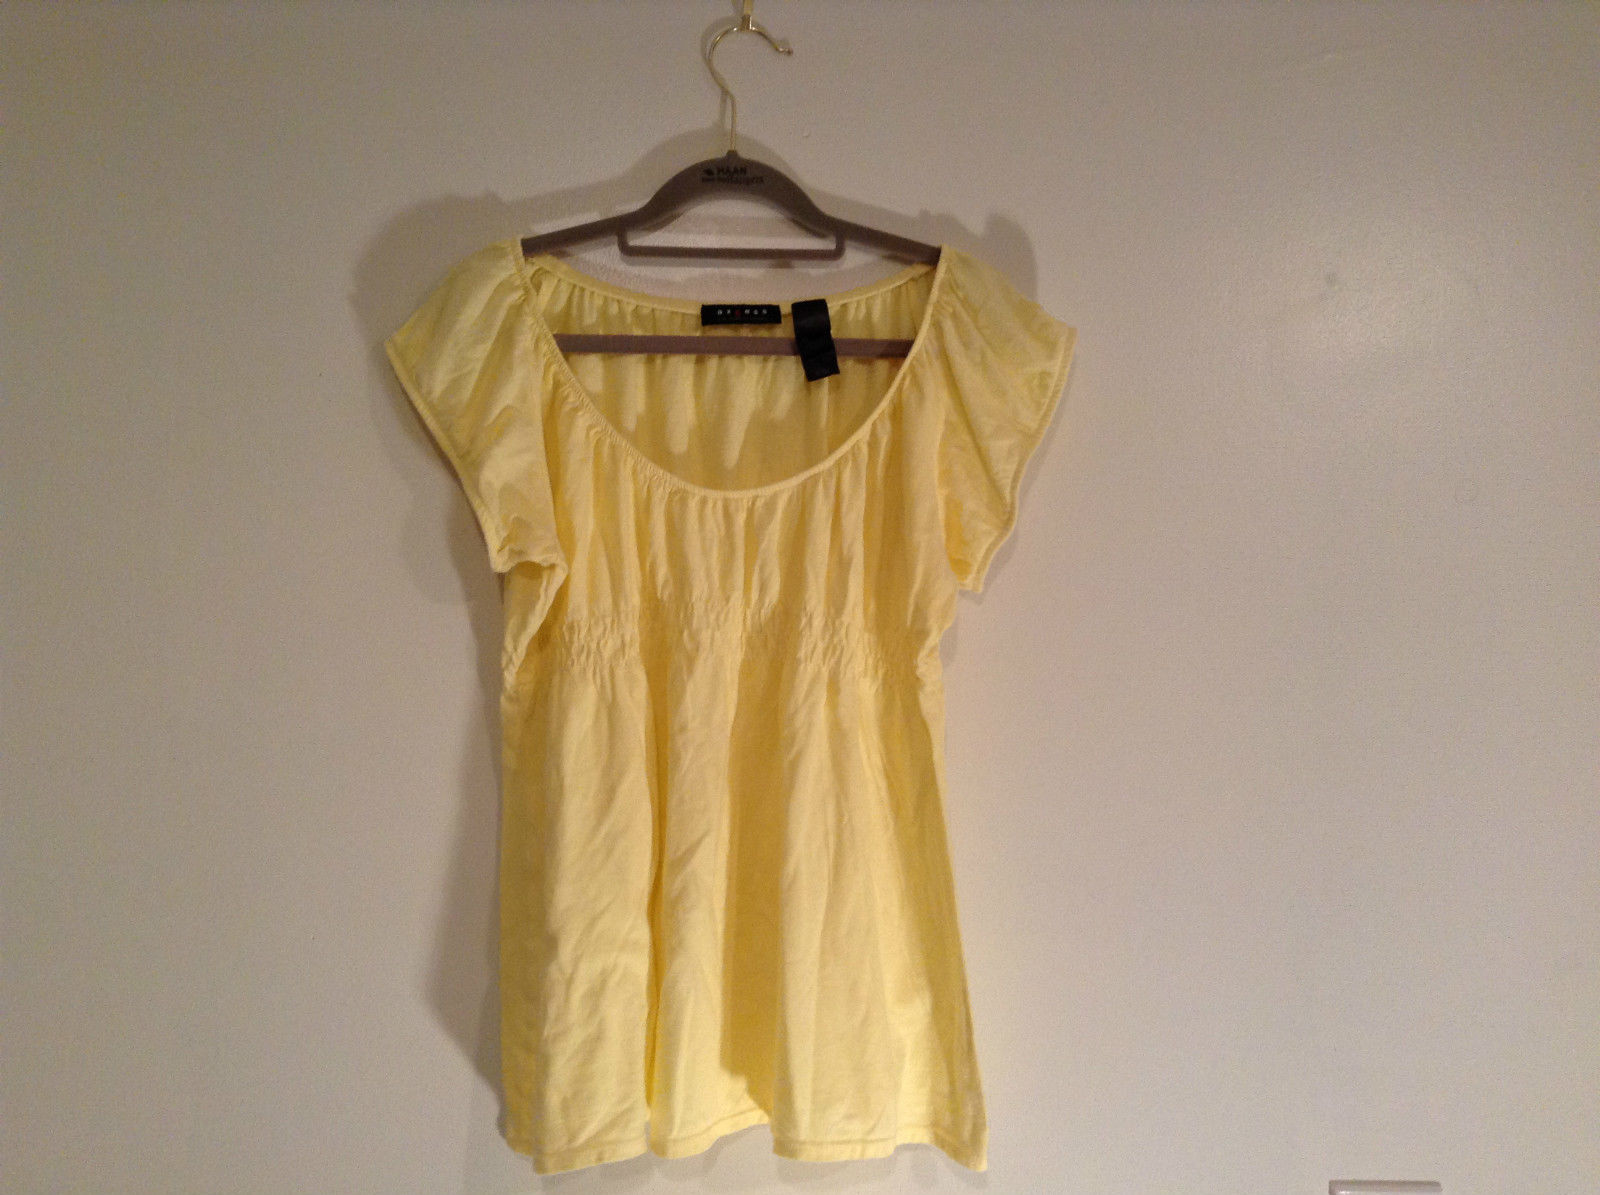 Axcess Liz Claiborne Company Size L Yellow 100 Percent Cotton Shirt Scoop Neck